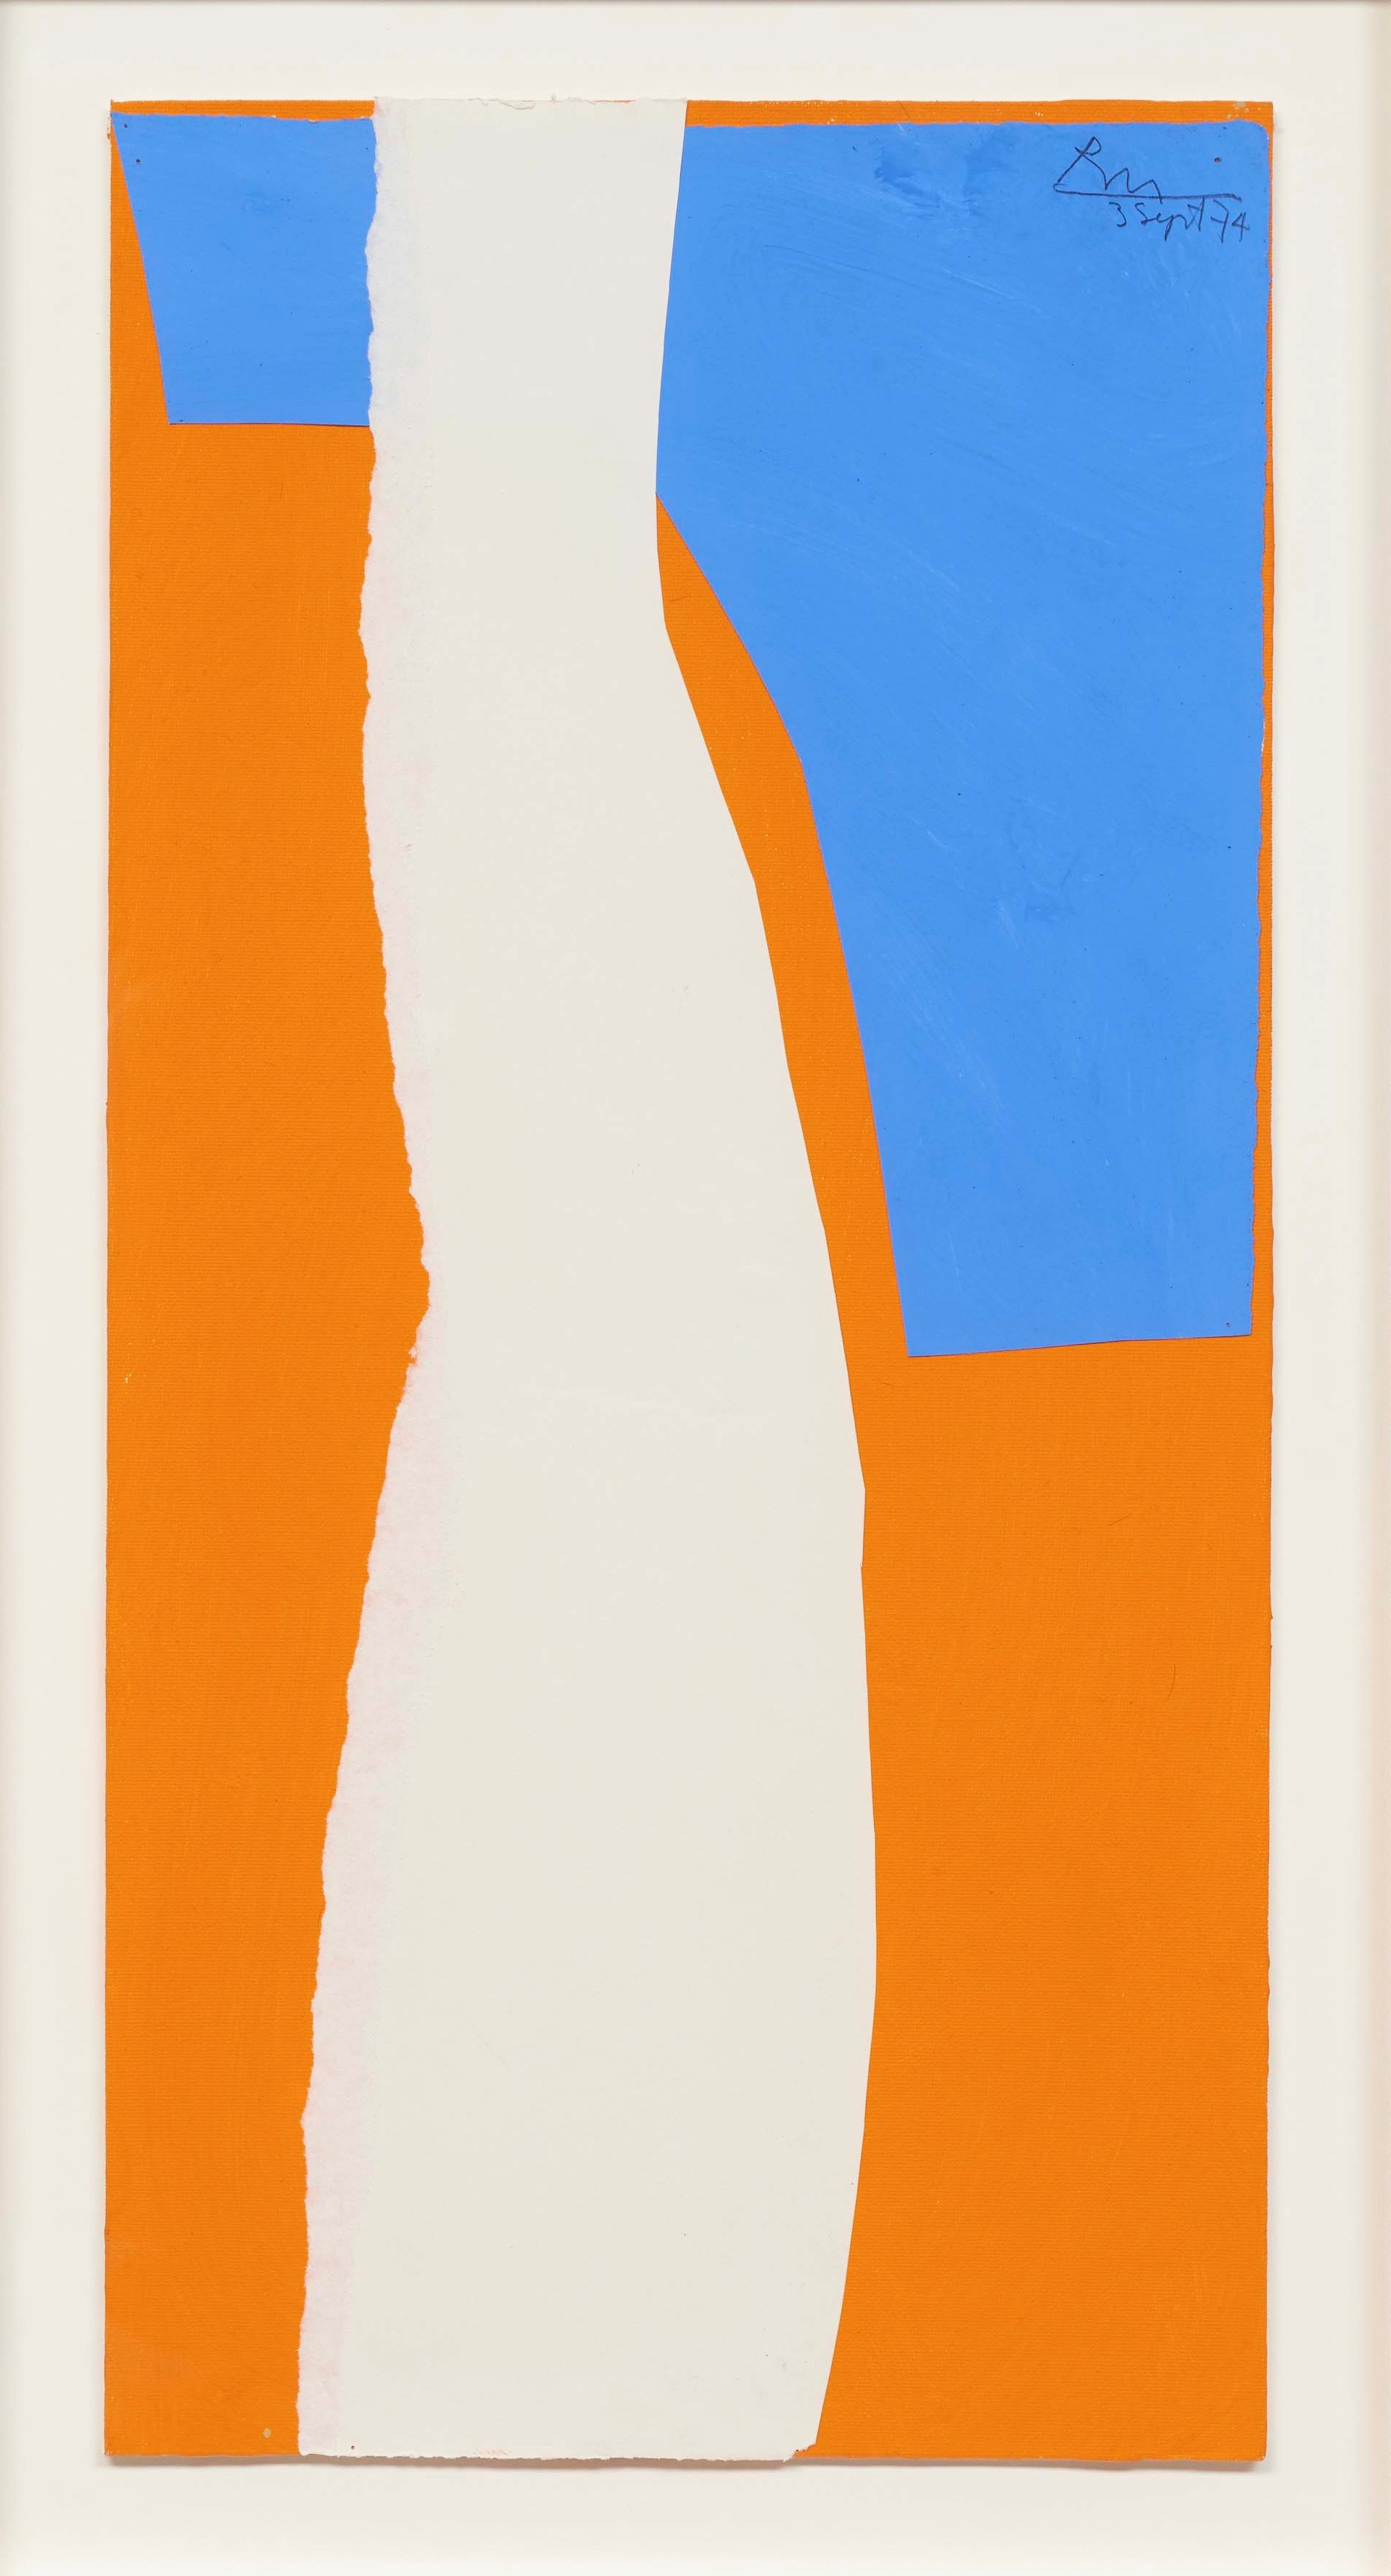 Robert Motherwell,  Blue and White on Orange No. 1